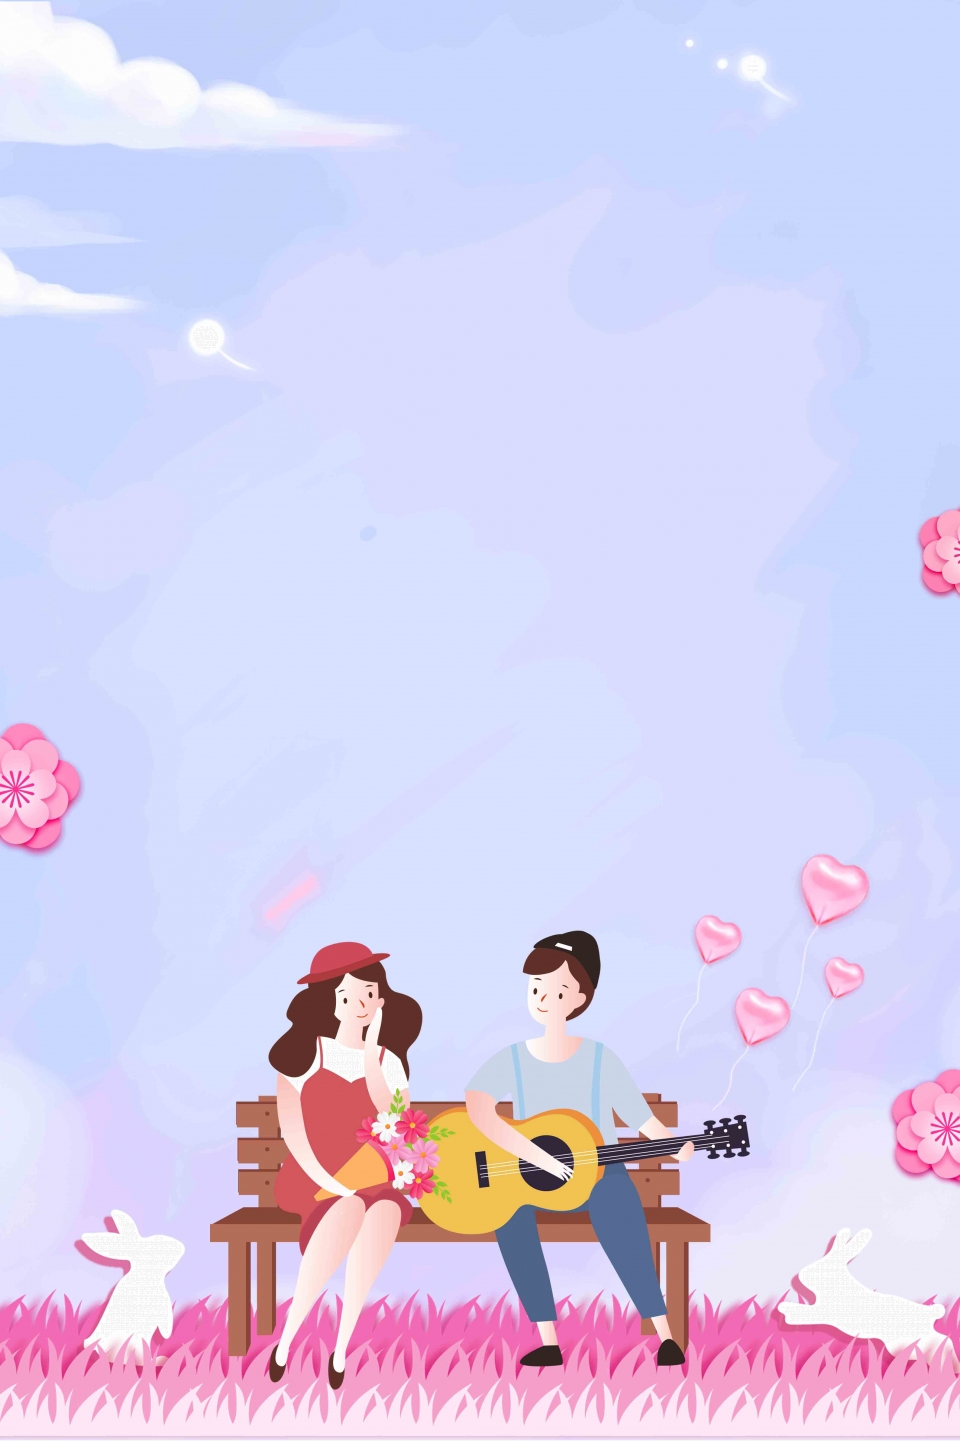 Romantic Cartoon Poster Background Romance Cartoon Trees Background Image For Free Download